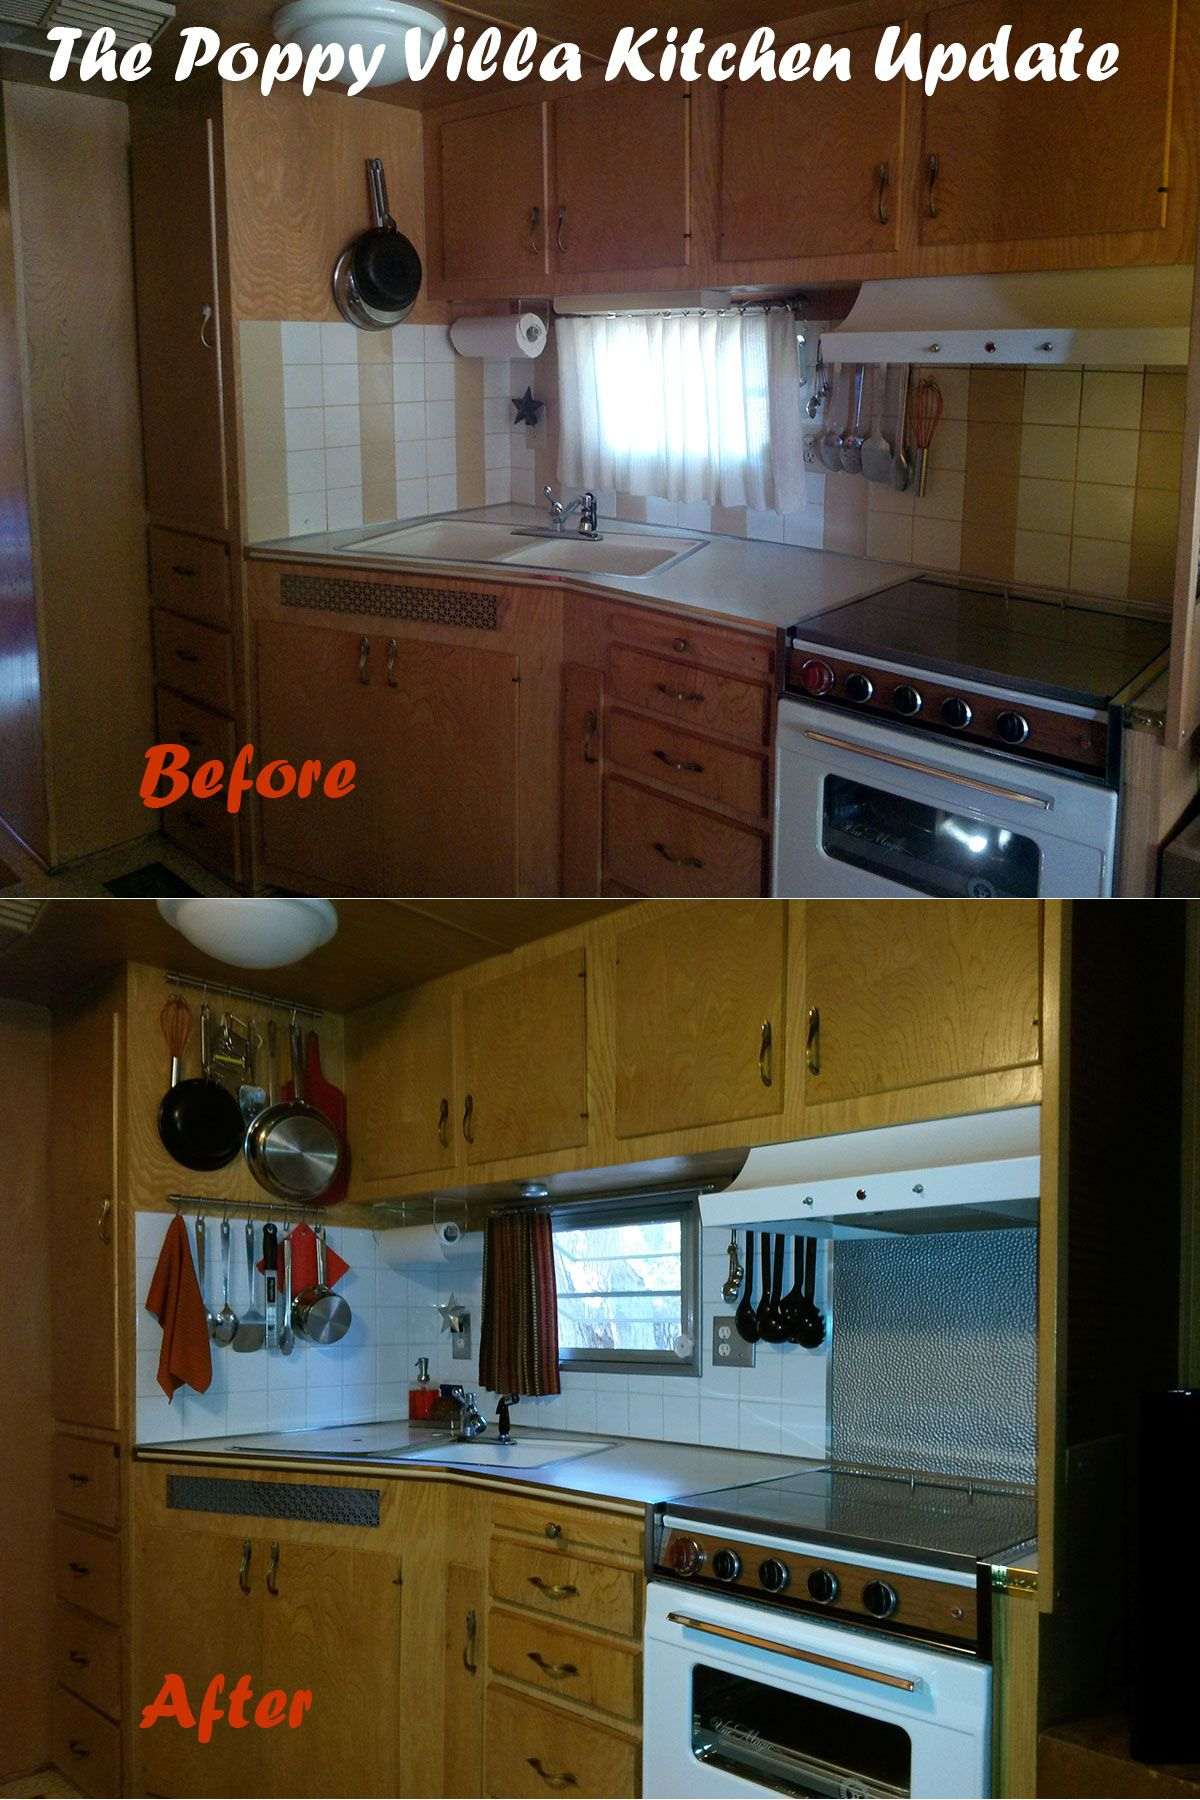 This is the first phase of the kitchen update in our vintage trailer